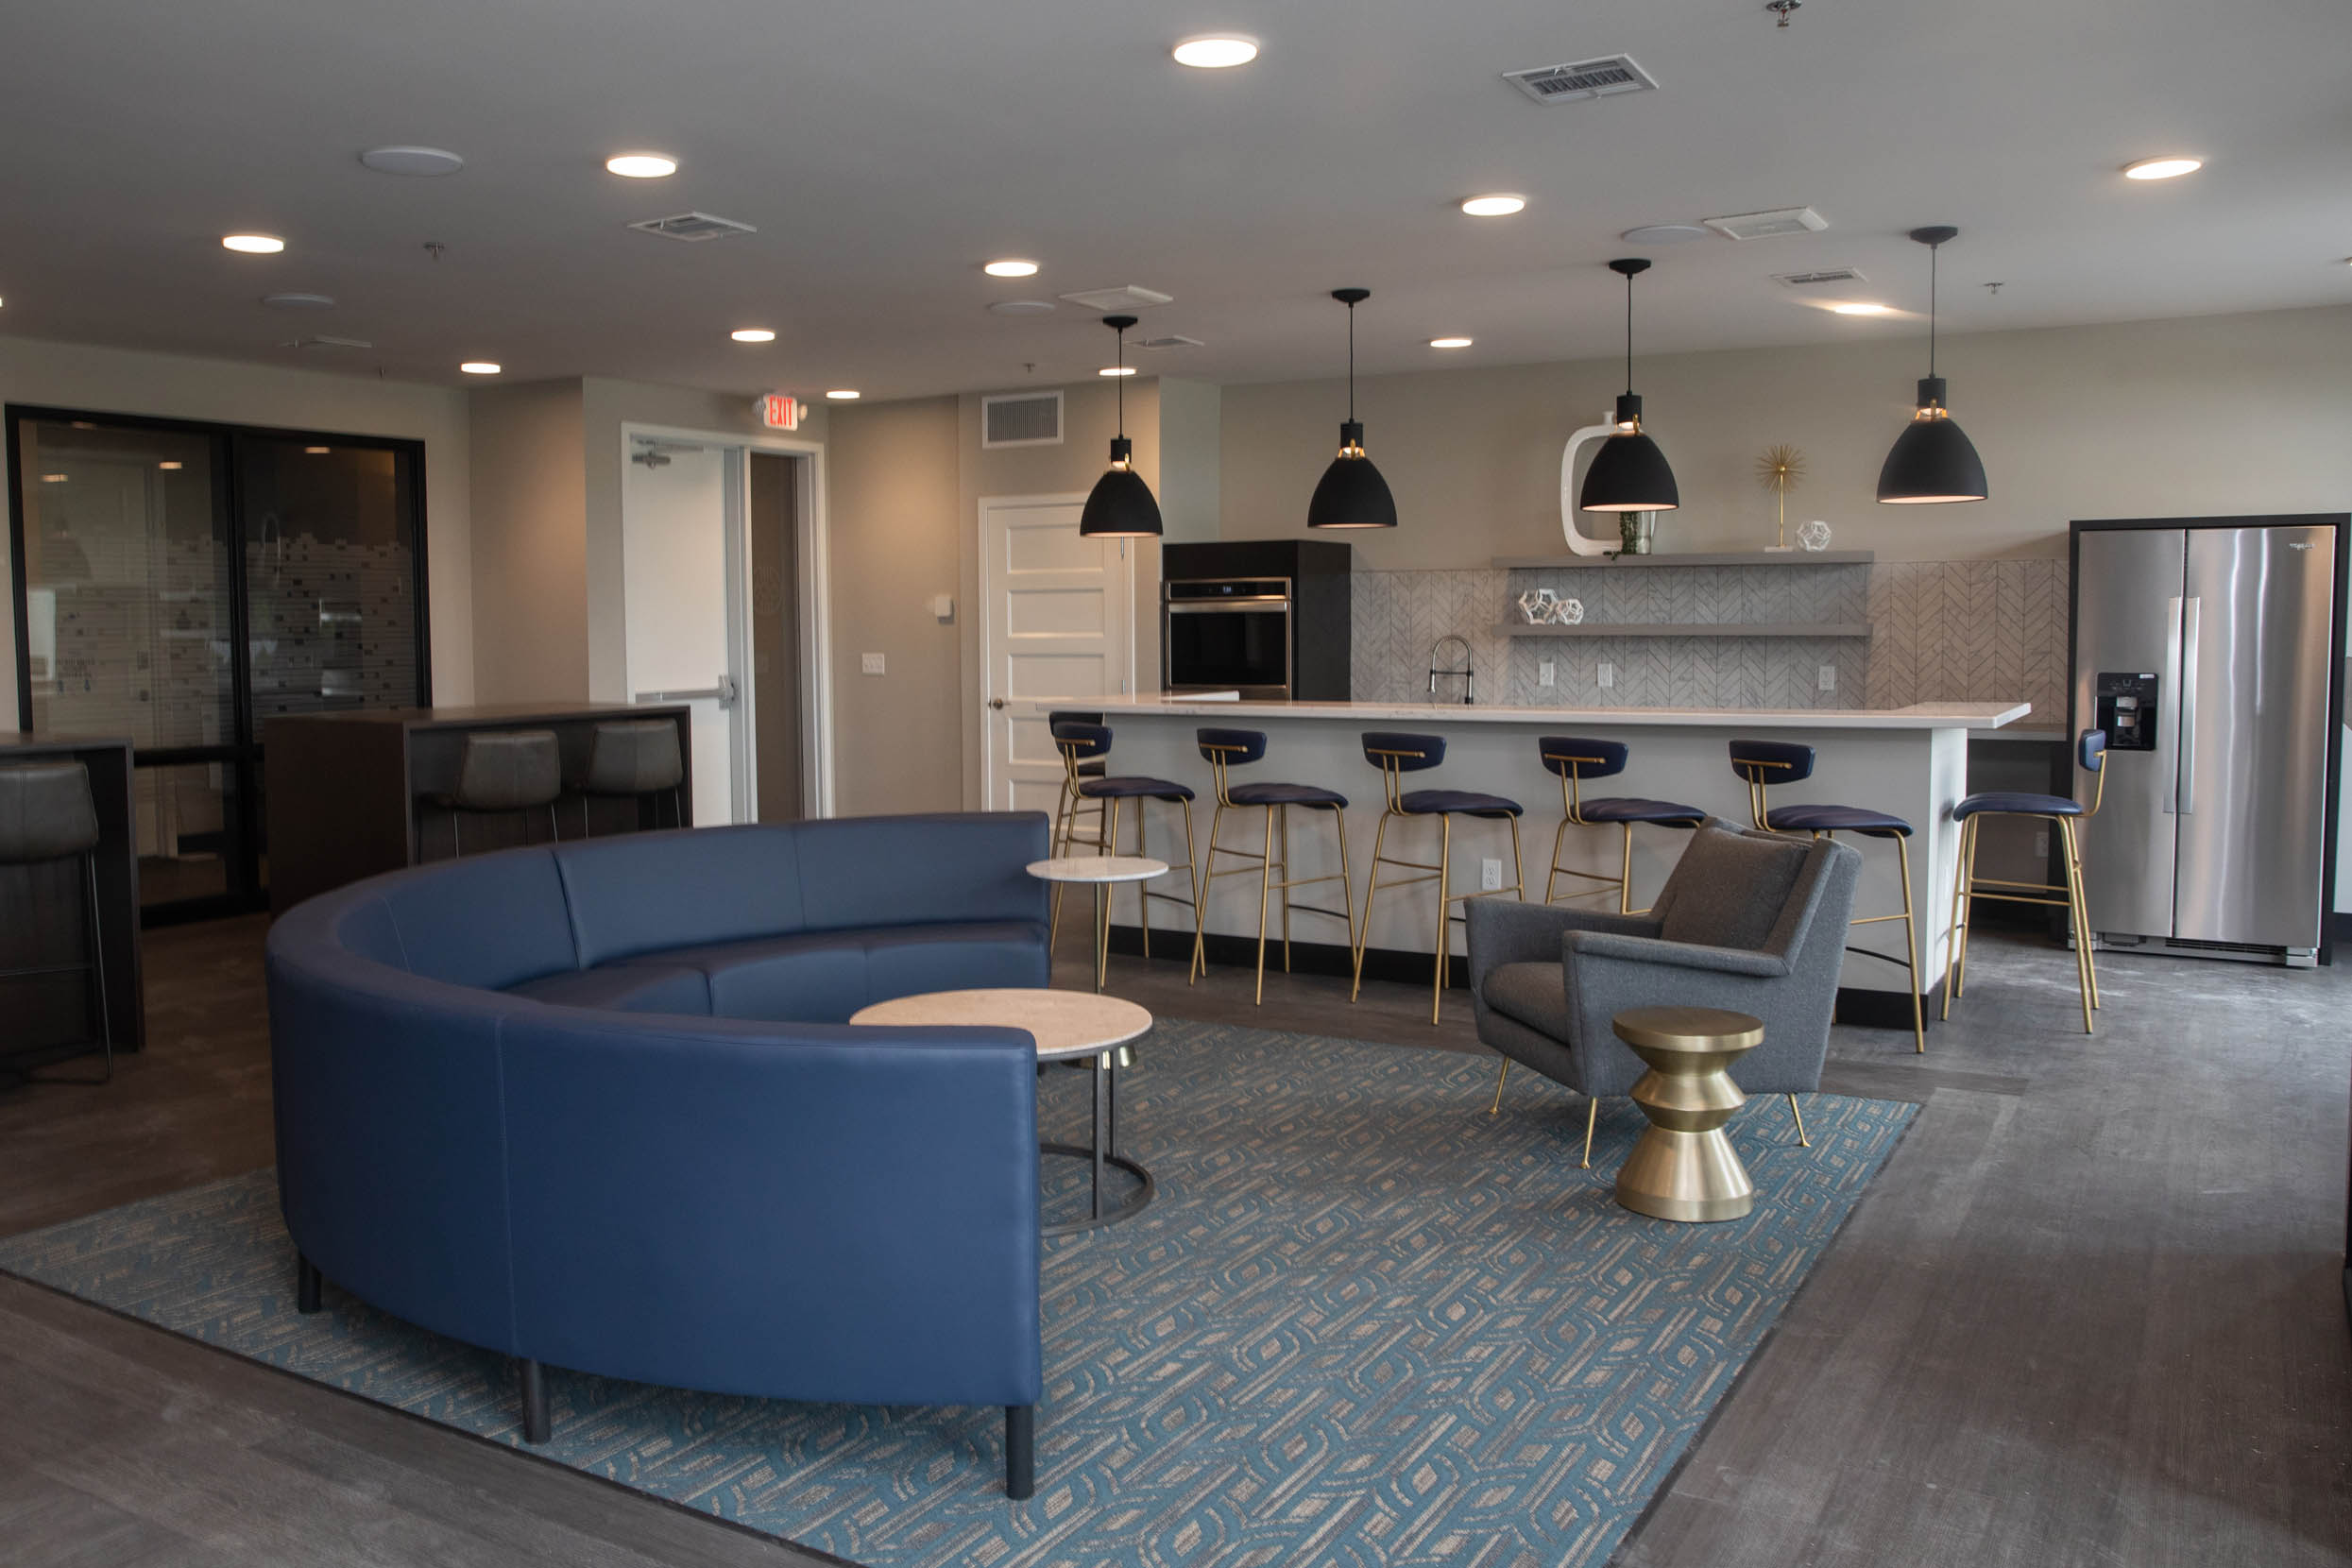 Modern Meets Glam In One Of A Kind Downtown Living Space Siouxfalls Business